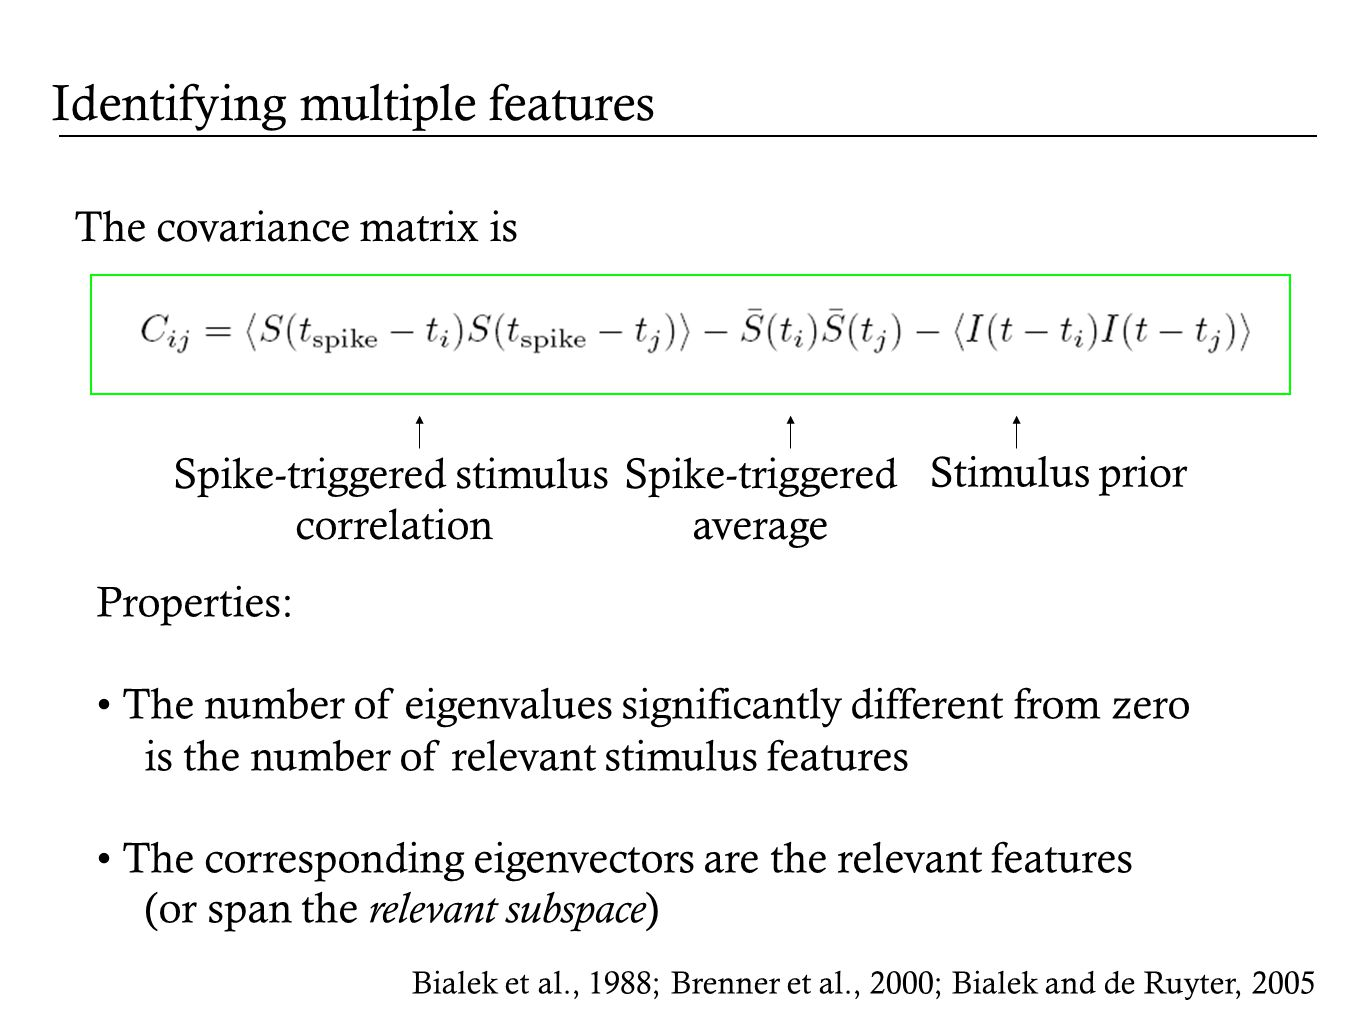 The covariance matrix is Properties: The number of eigenvalues significantly different from zero is the number of relevant stimulus features The corresponding eigenvectors are the relevant features (or span the relevant subspace ) Stimulus prior Bialek et al., 1988; Brenner et al., 2000; Bialek and de Ruyter, 2005 Identifying multiple features Spike-triggered stimulus correlation Spike-triggered average